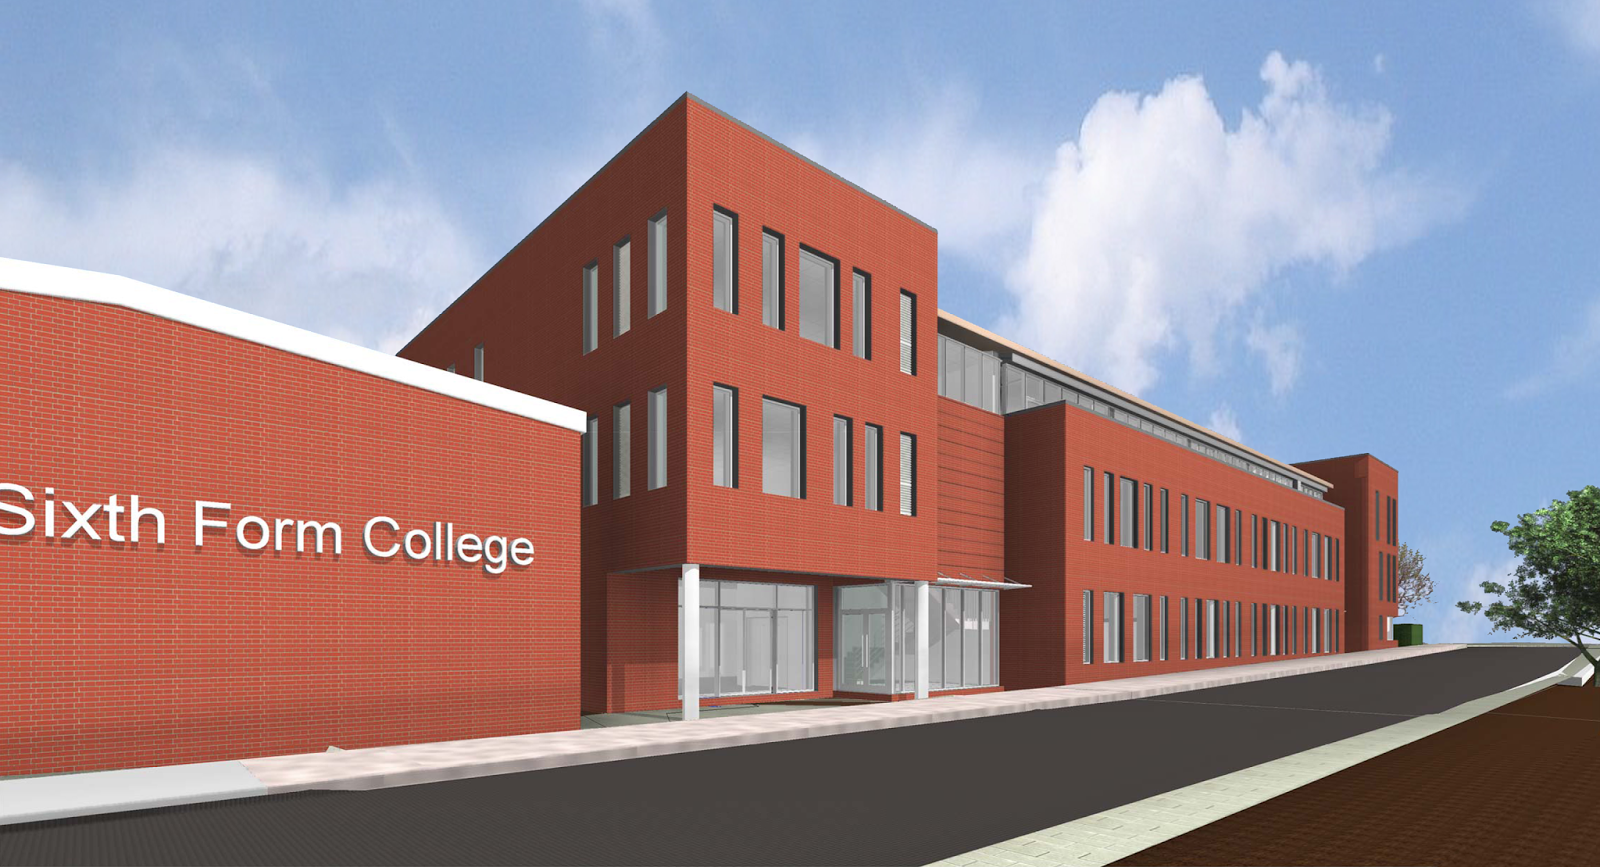 Planning approval granted for Hills Road Sixth Form College